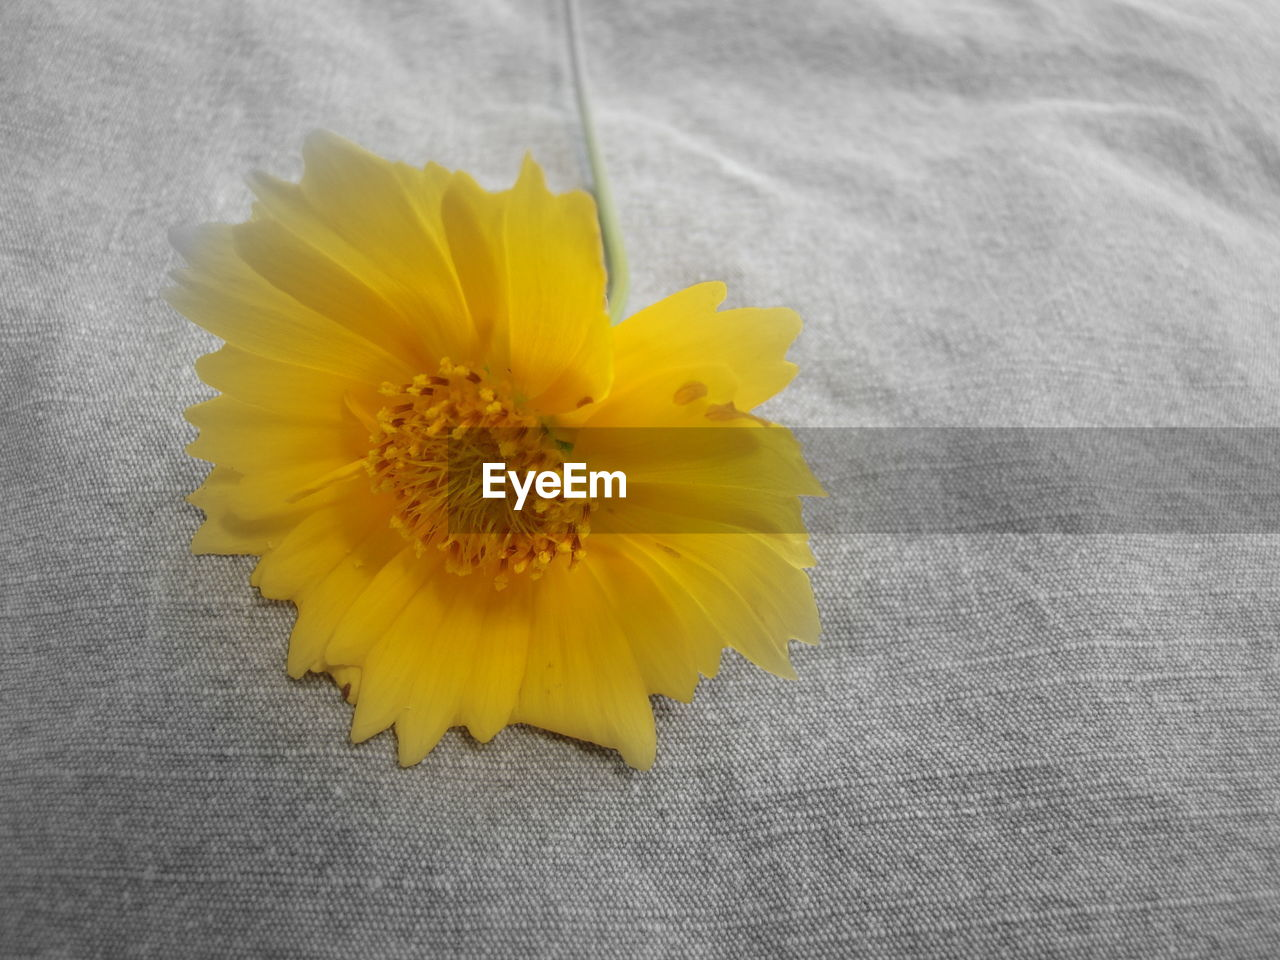 yellow, flower, petal, flower head, fragility, freshness, no people, beauty in nature, high angle view, close-up, nature, day, sunflower, outdoors